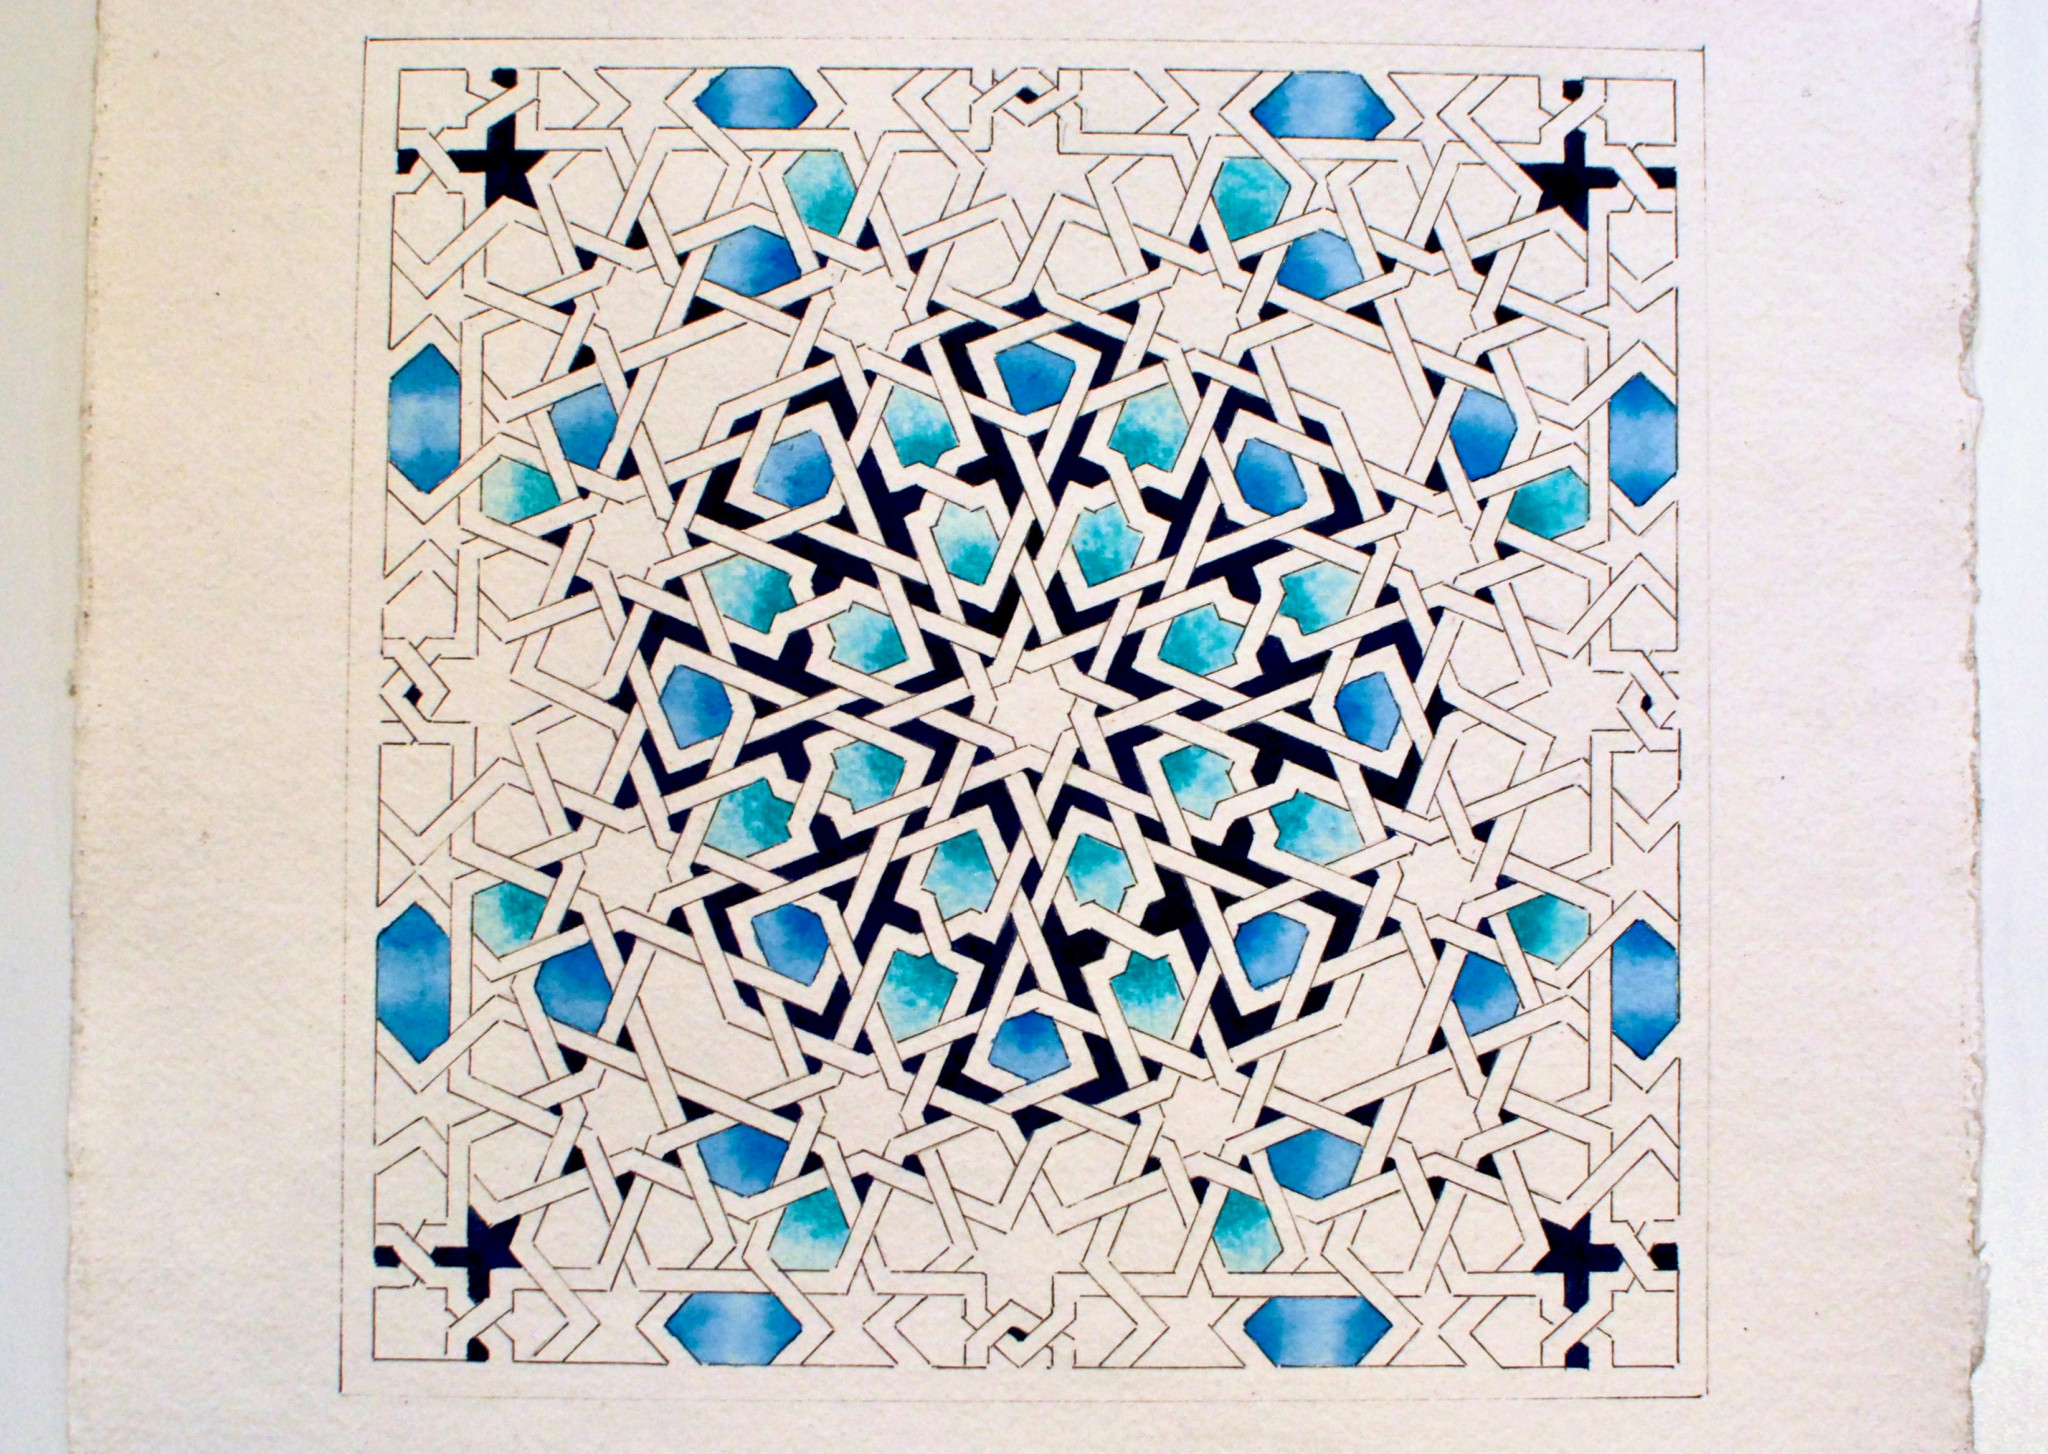 A photo of a geometric pattern in different shades of blue